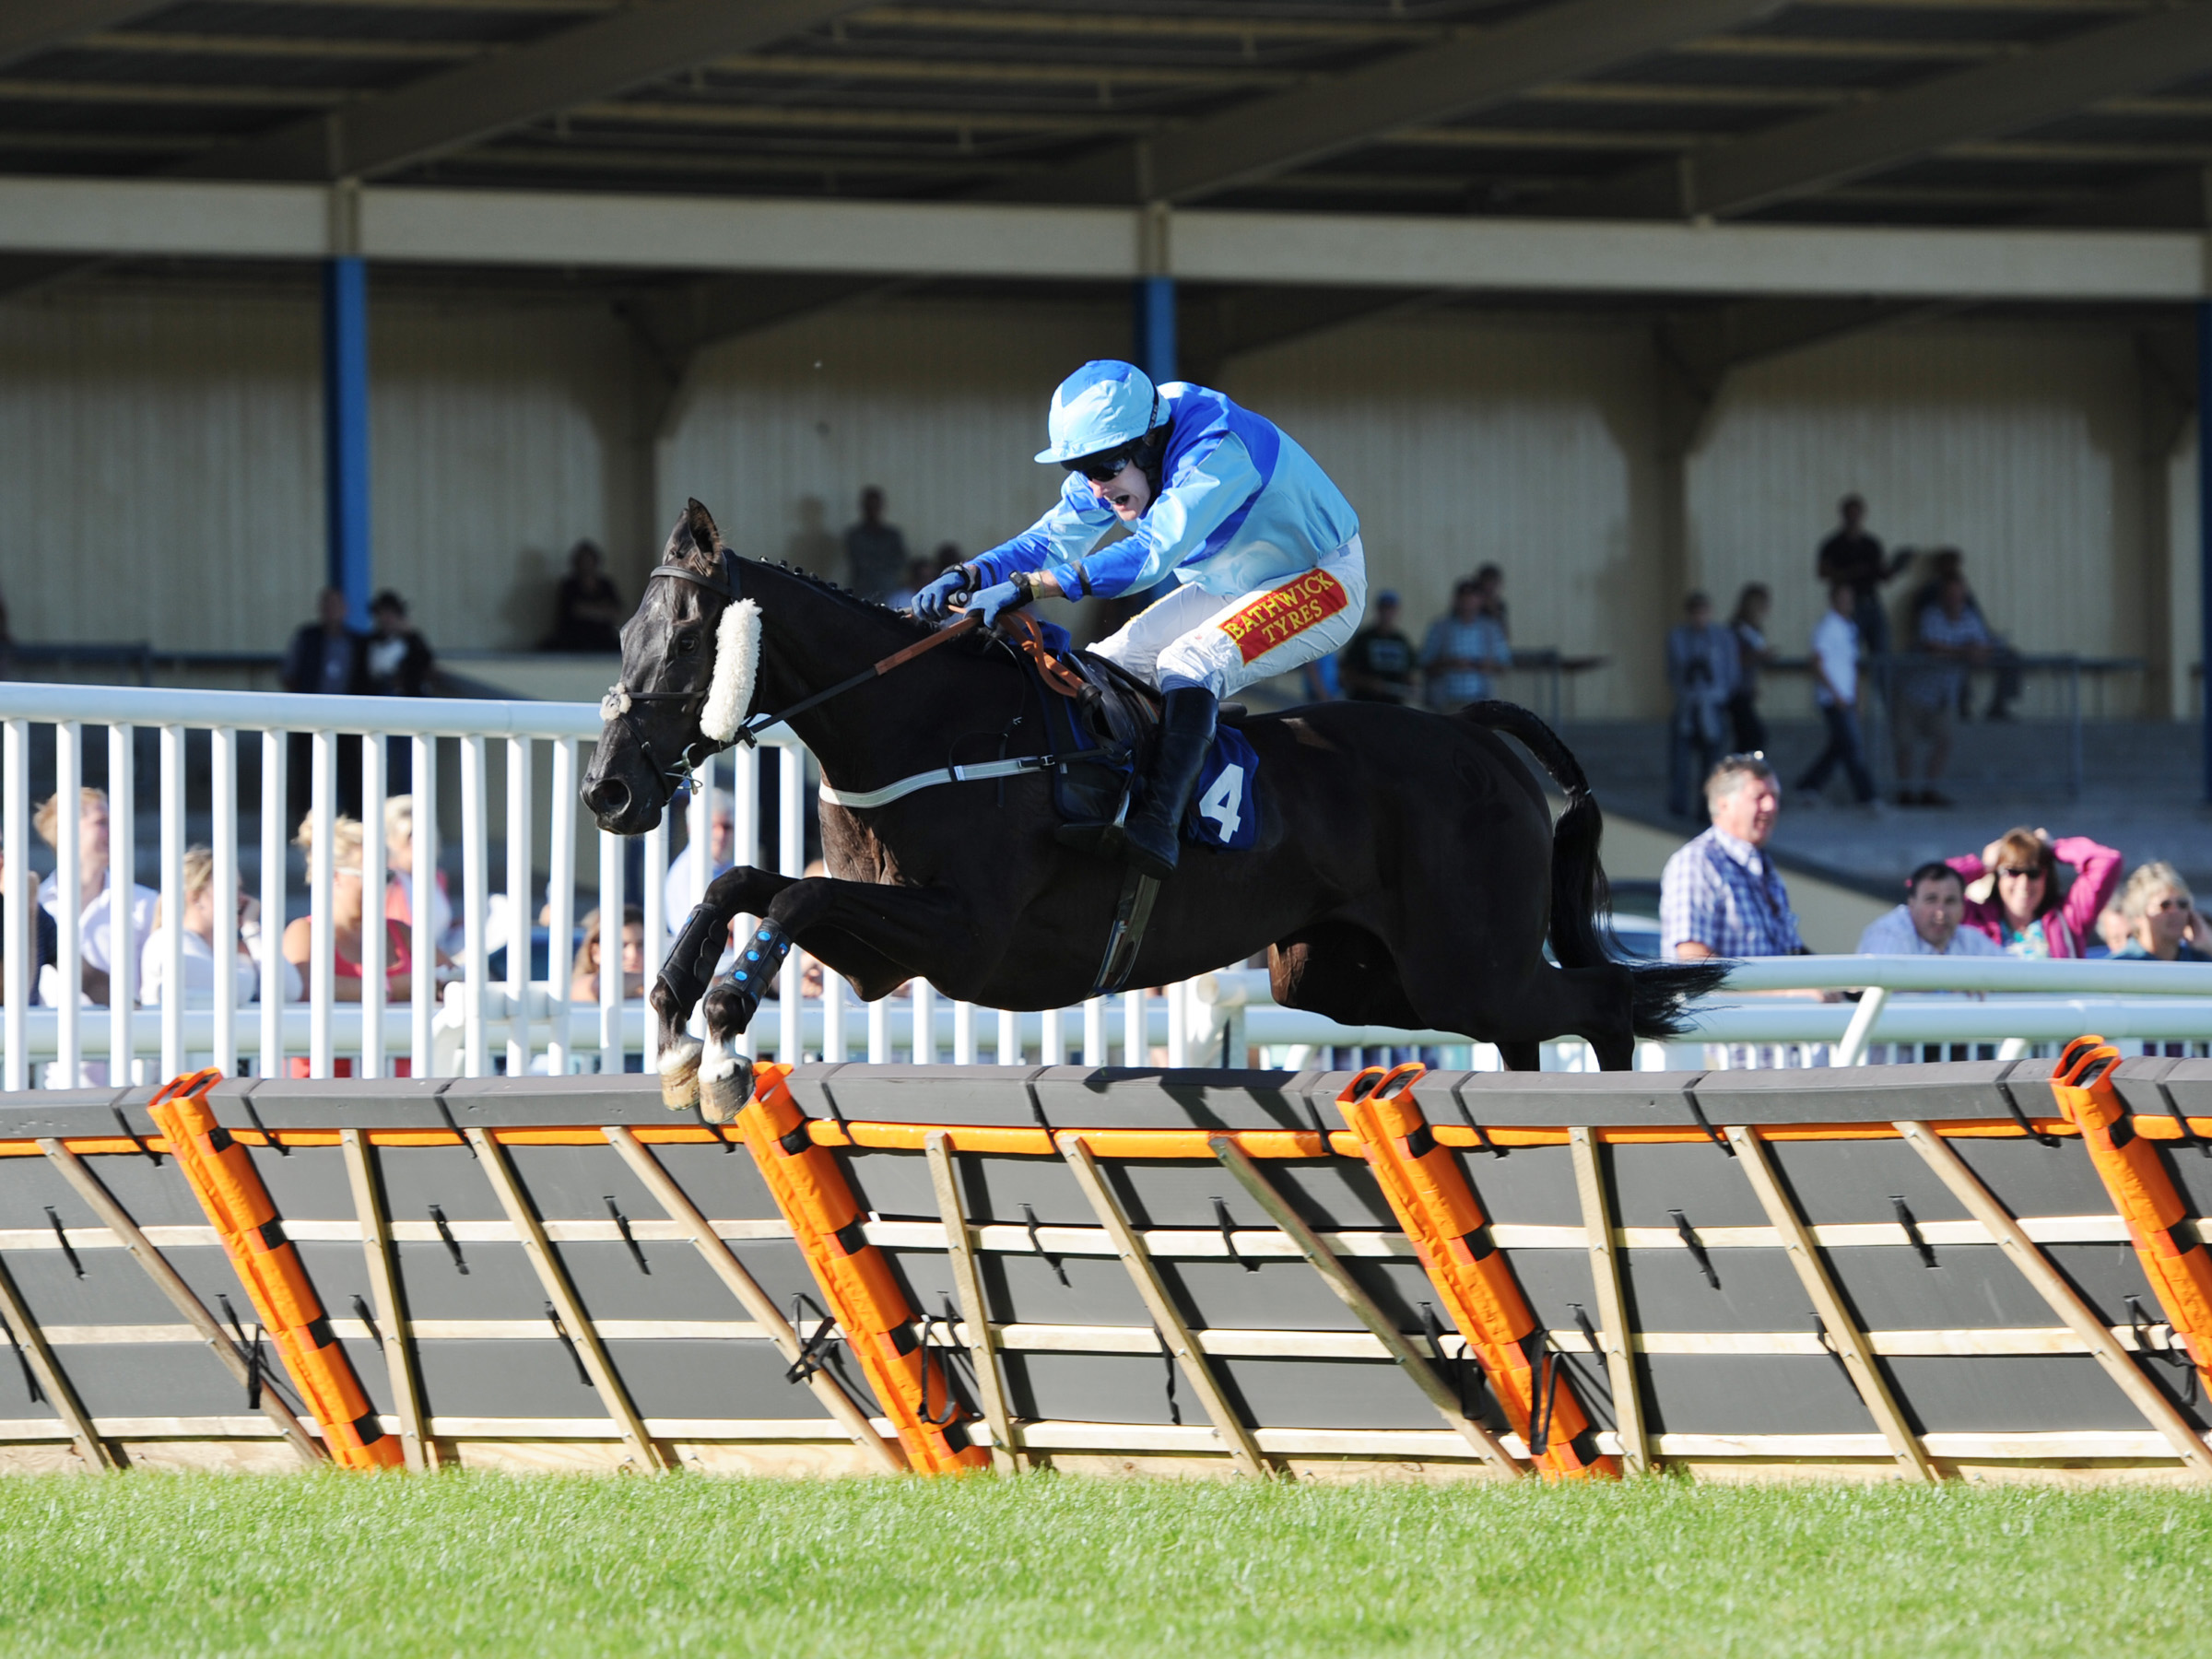 Welcome to 2014 and the new Nigel Hawke's Thorne Farm Racing website